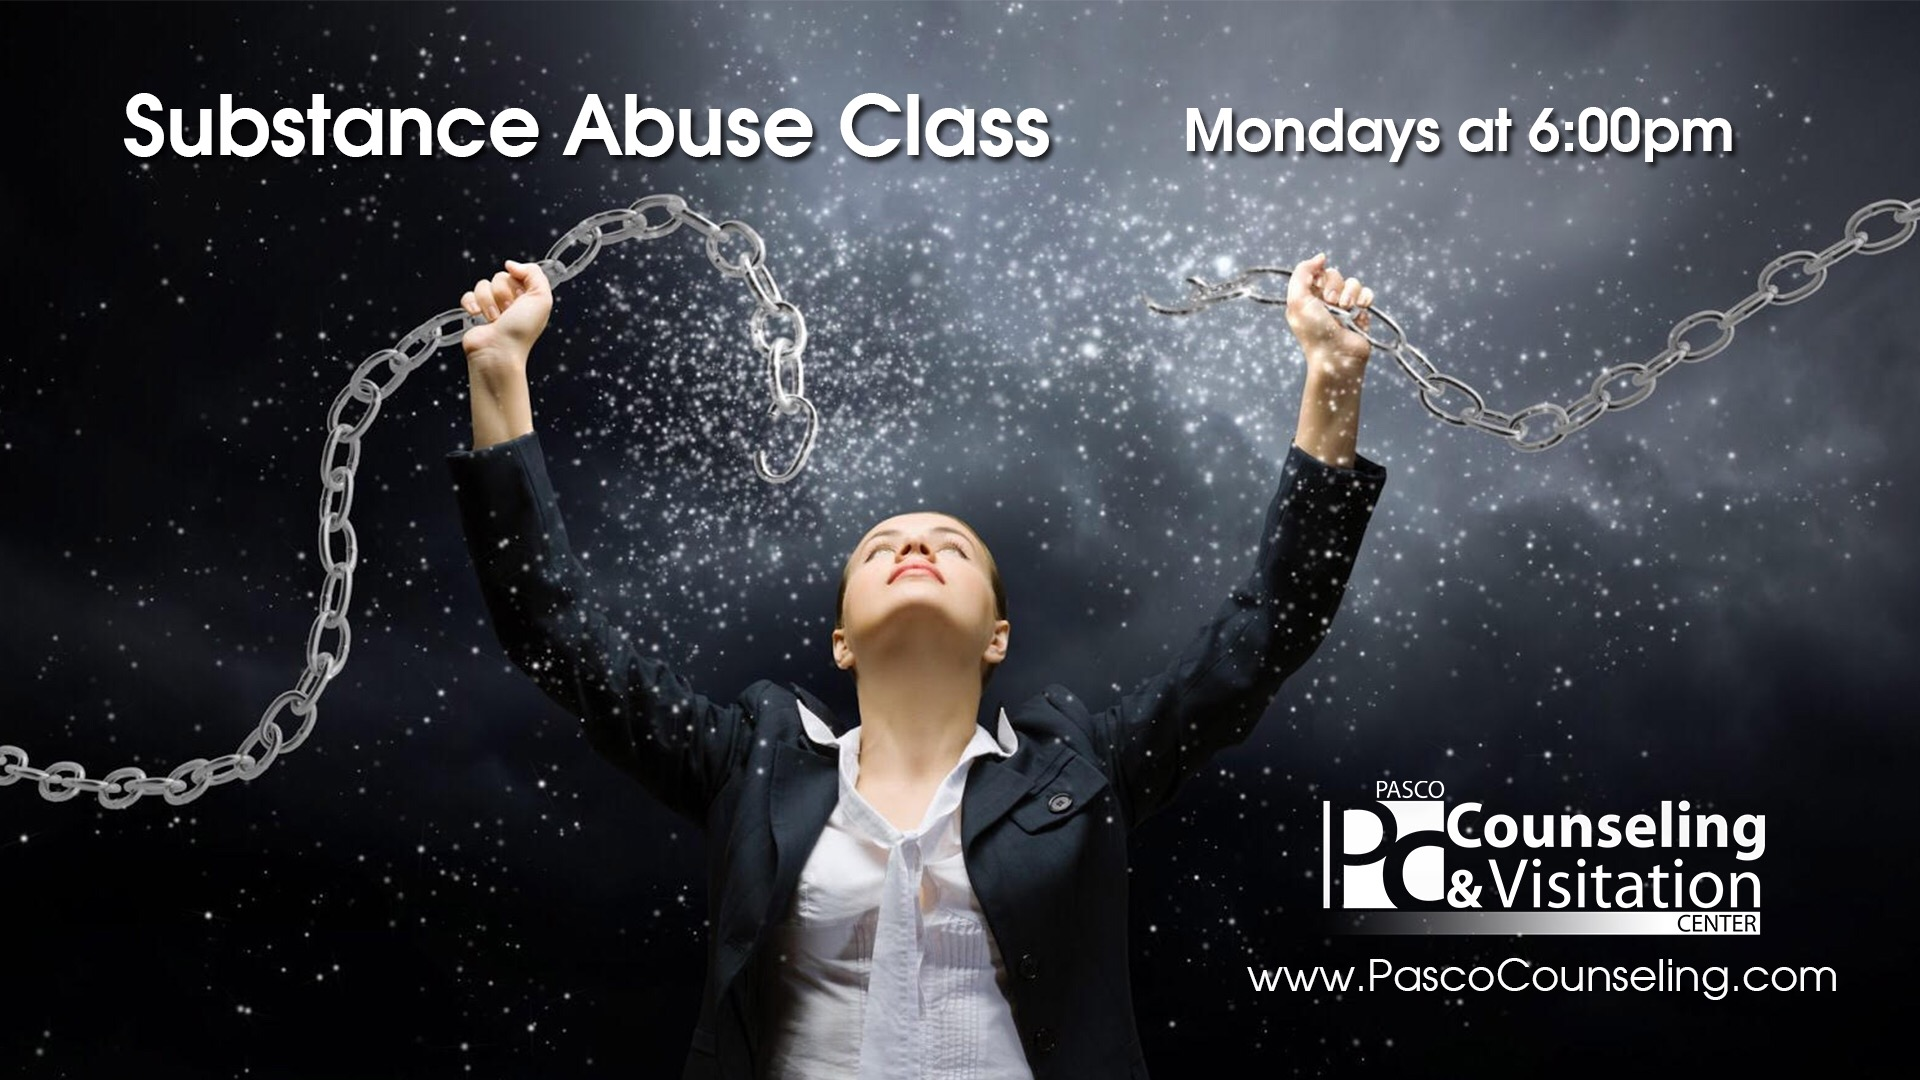 Pasco-counseling-&-visitation-substance-abuse-class